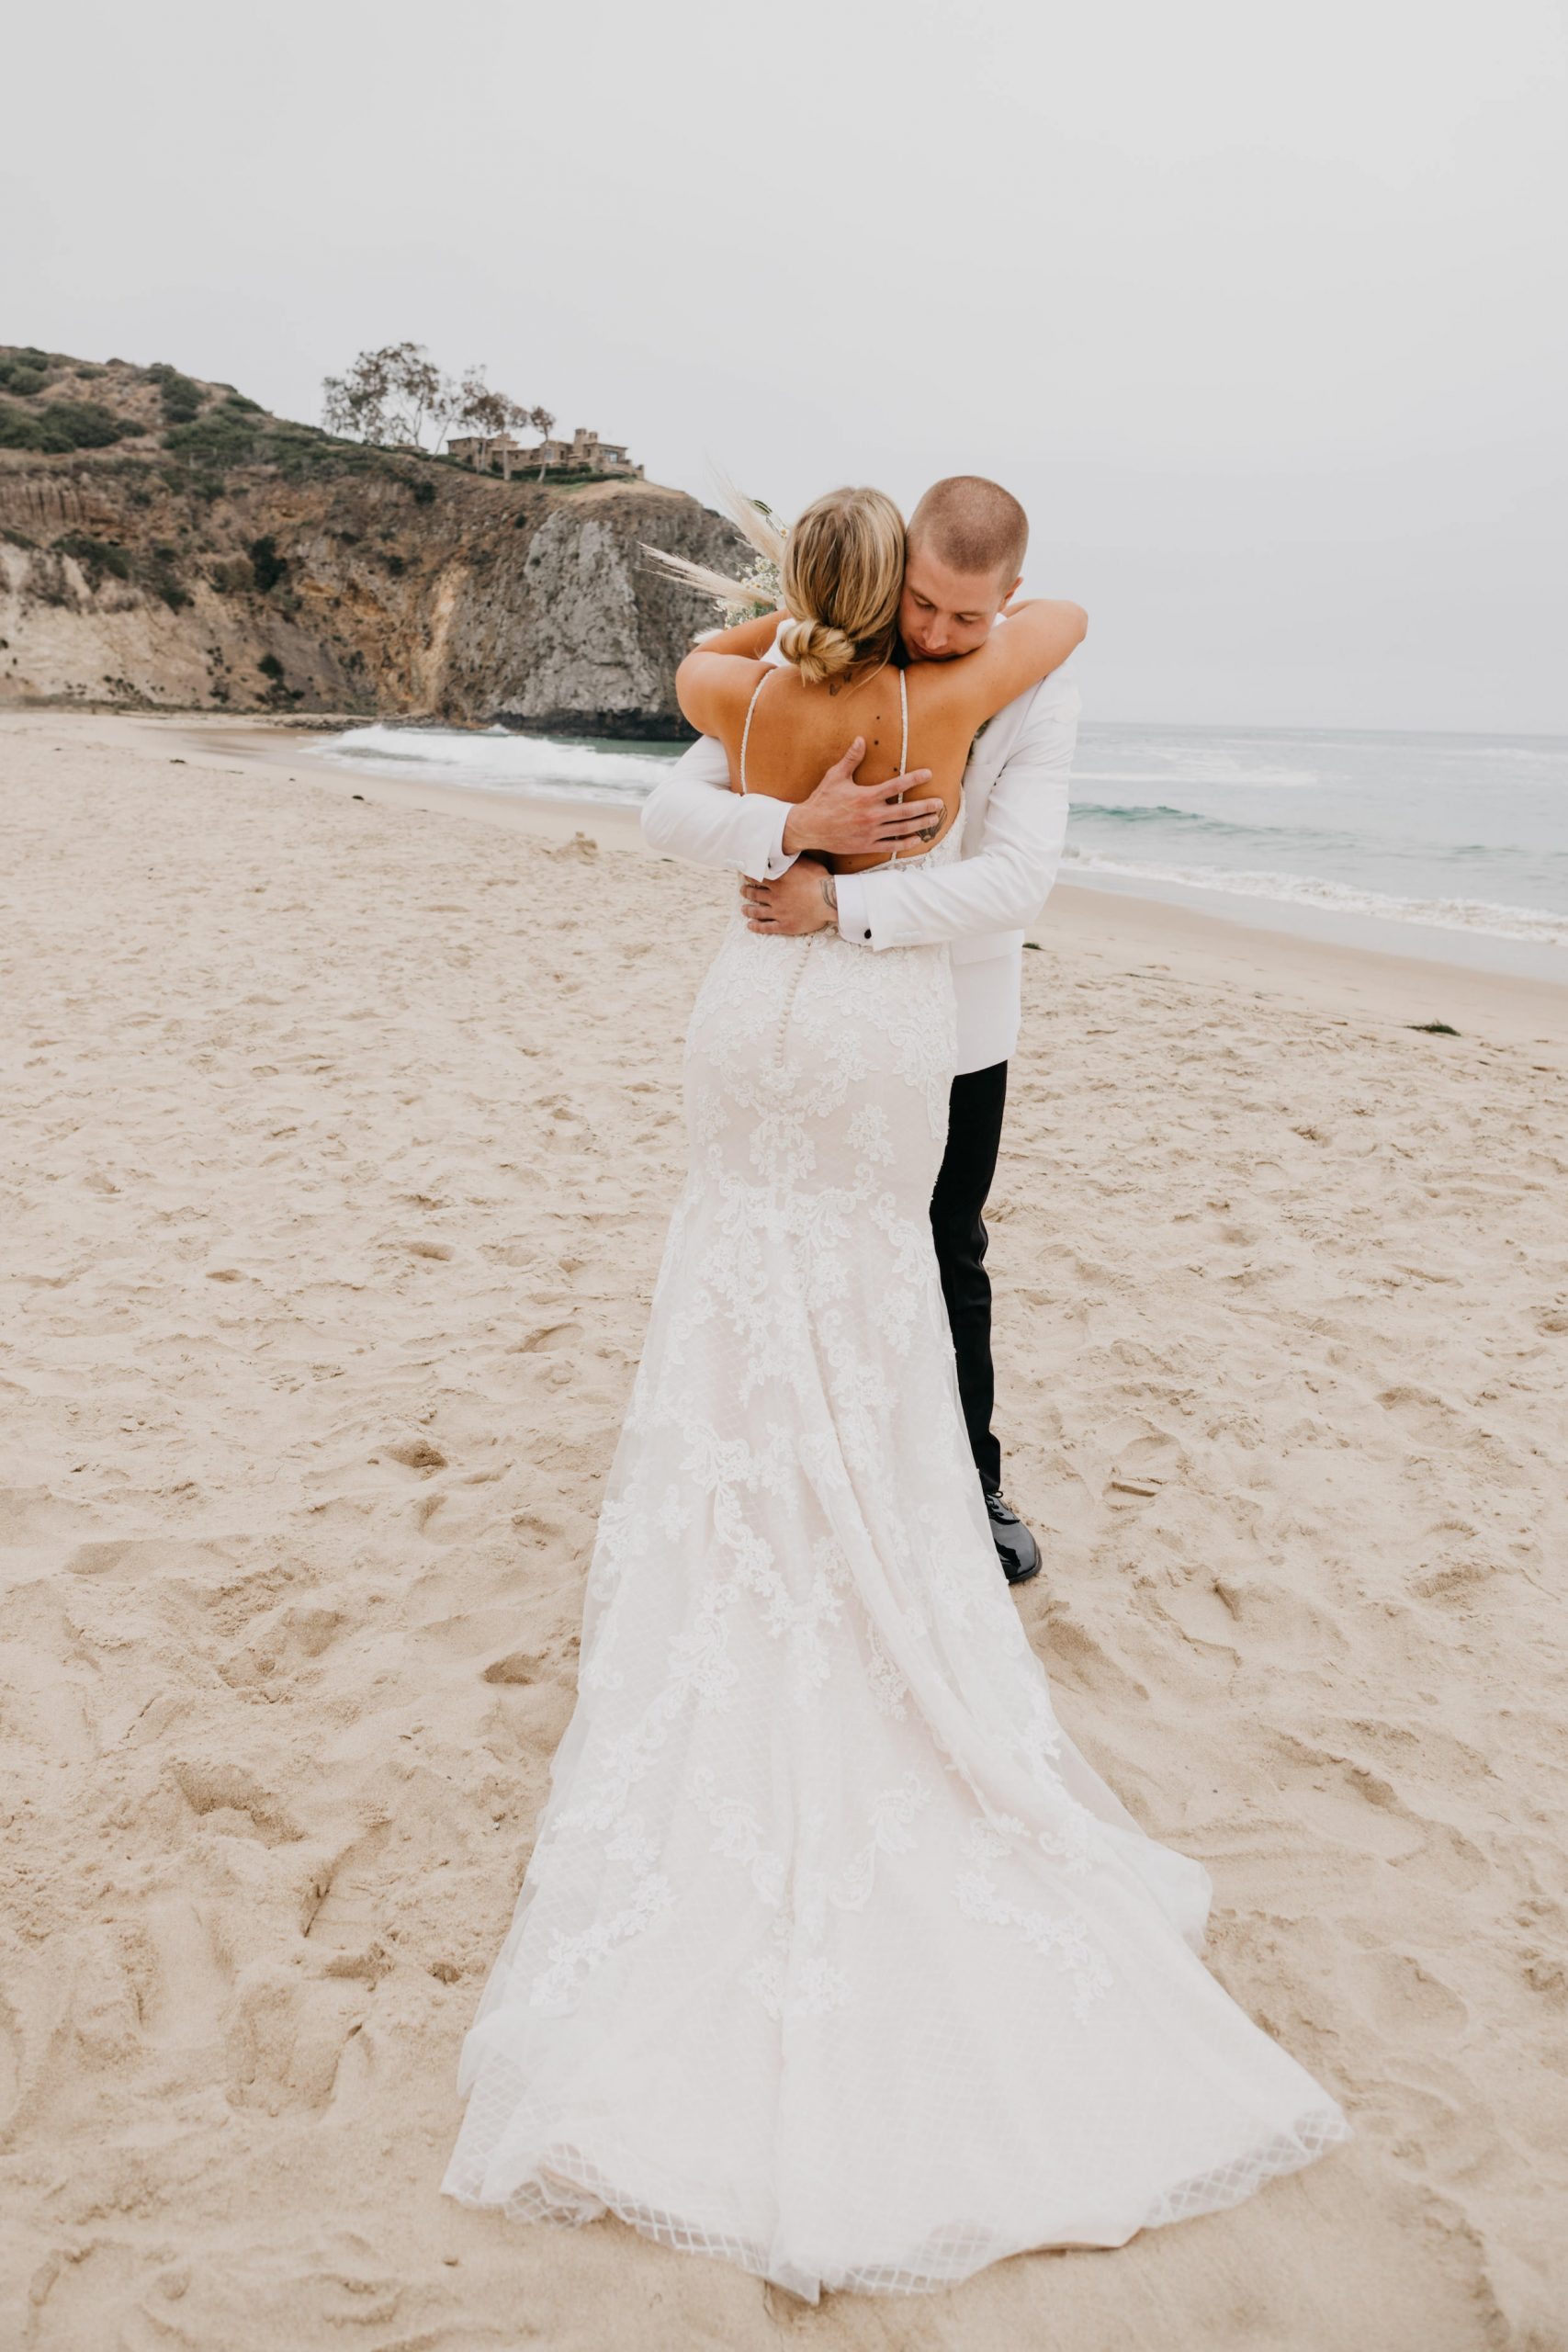 Bride and Groom First Look in Crystal Cove State park Wedding in Laguna Beach, image by Fatima Elreda Photo